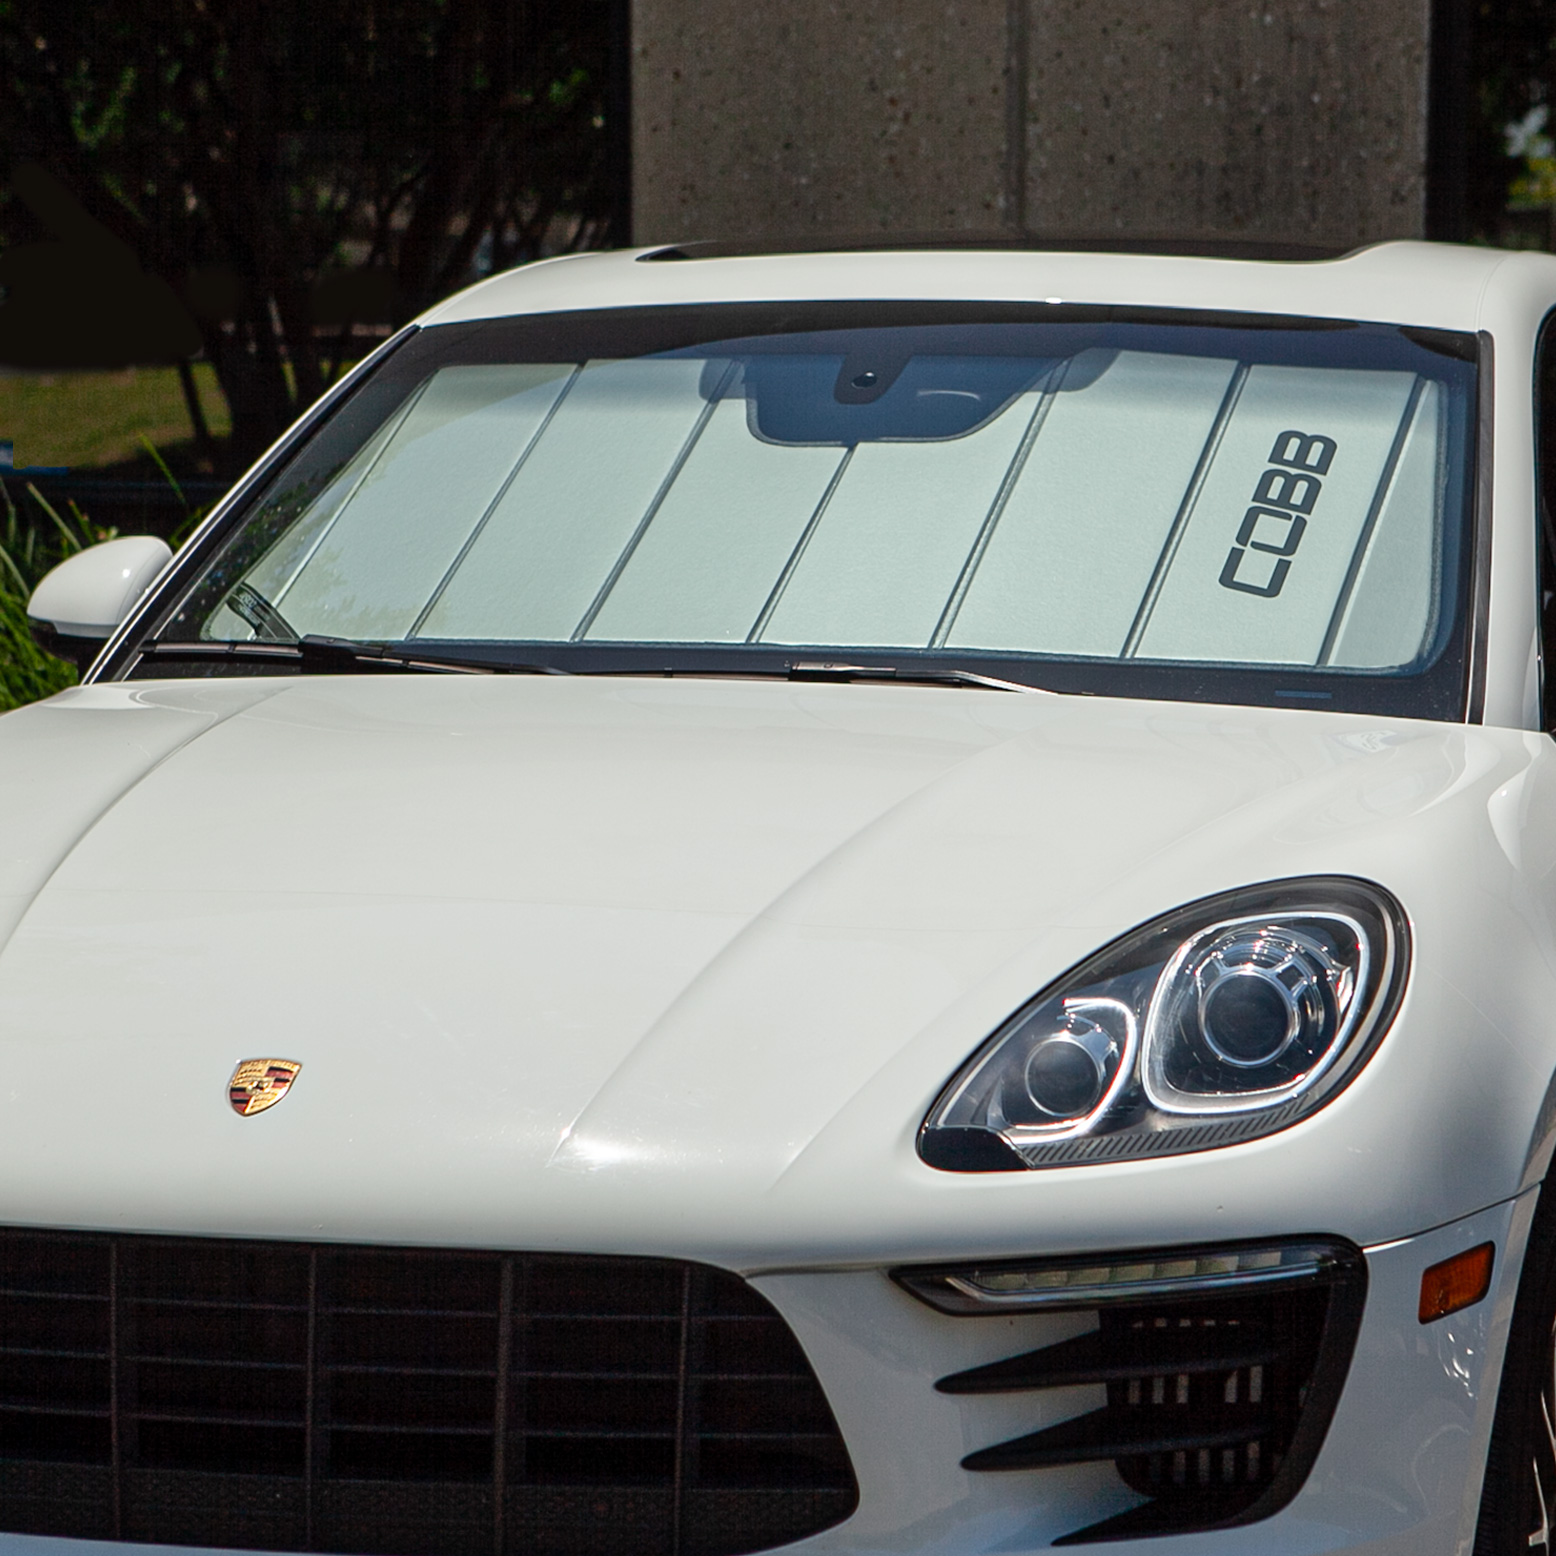 COBB x Covercraft Sun Shade Porsche Macan 2015-2020